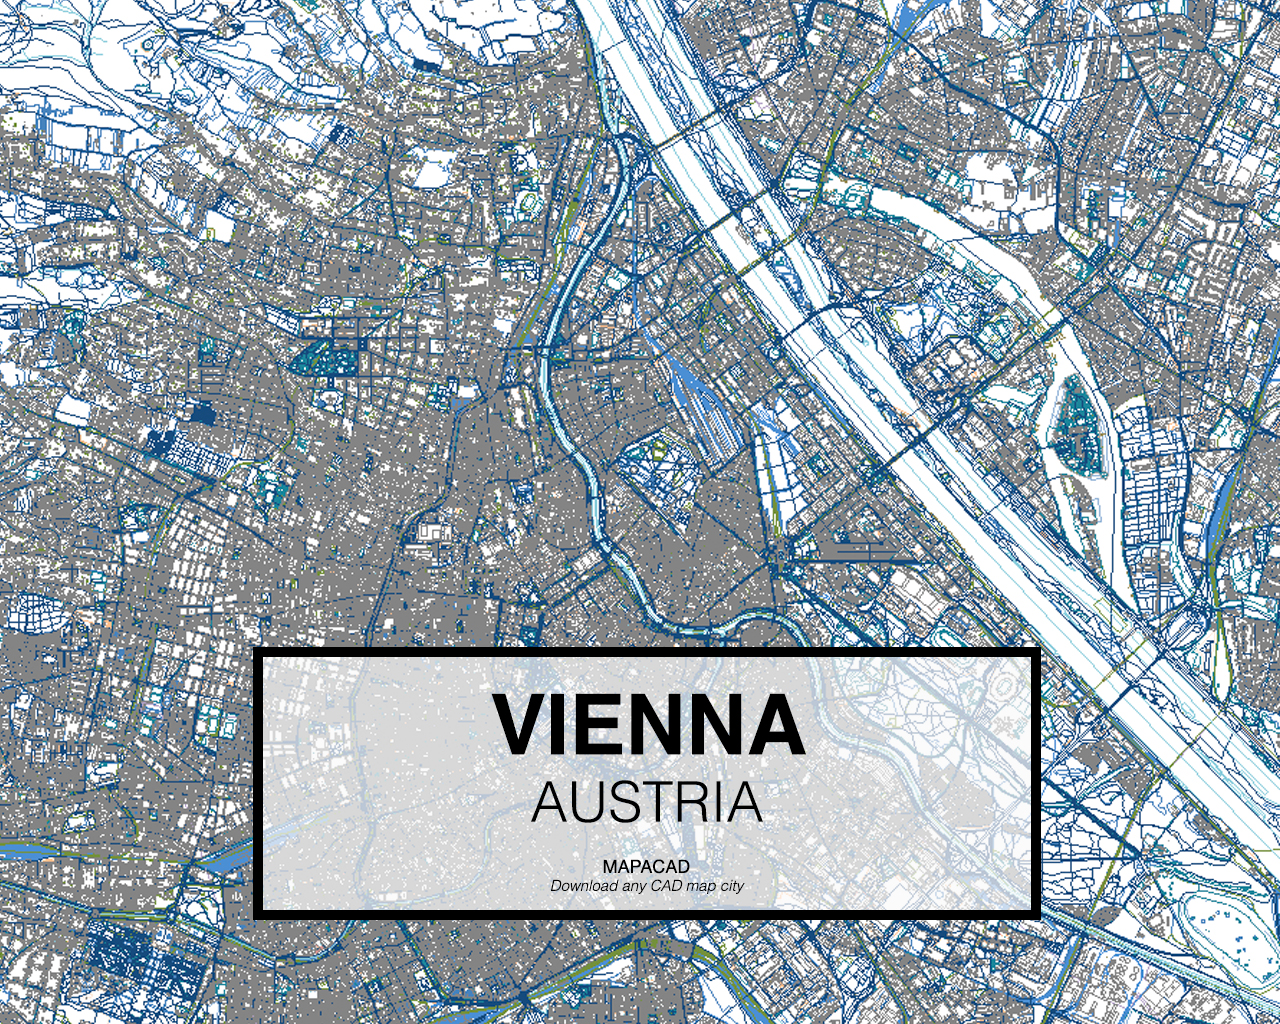 Usa map dxf html usa usa states map collections usa map dxf html with vienna austria attractions map mexico on world map silhouette vector further gumiabroncs Choice Image